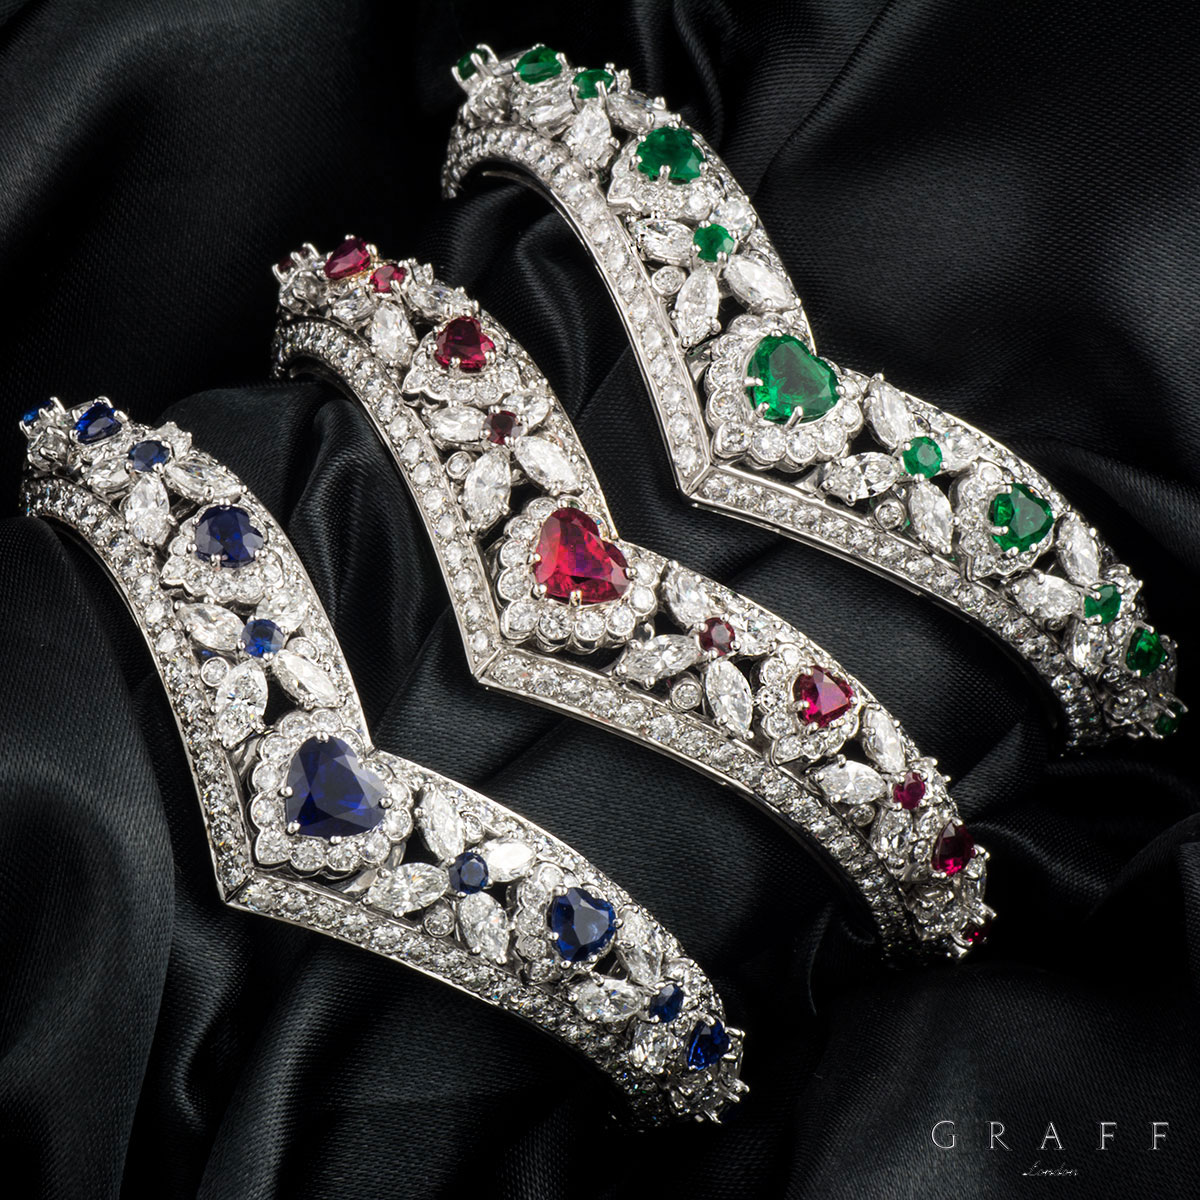 Graff Diamond, Emerald, Ruby & Sapphire Set Bangles